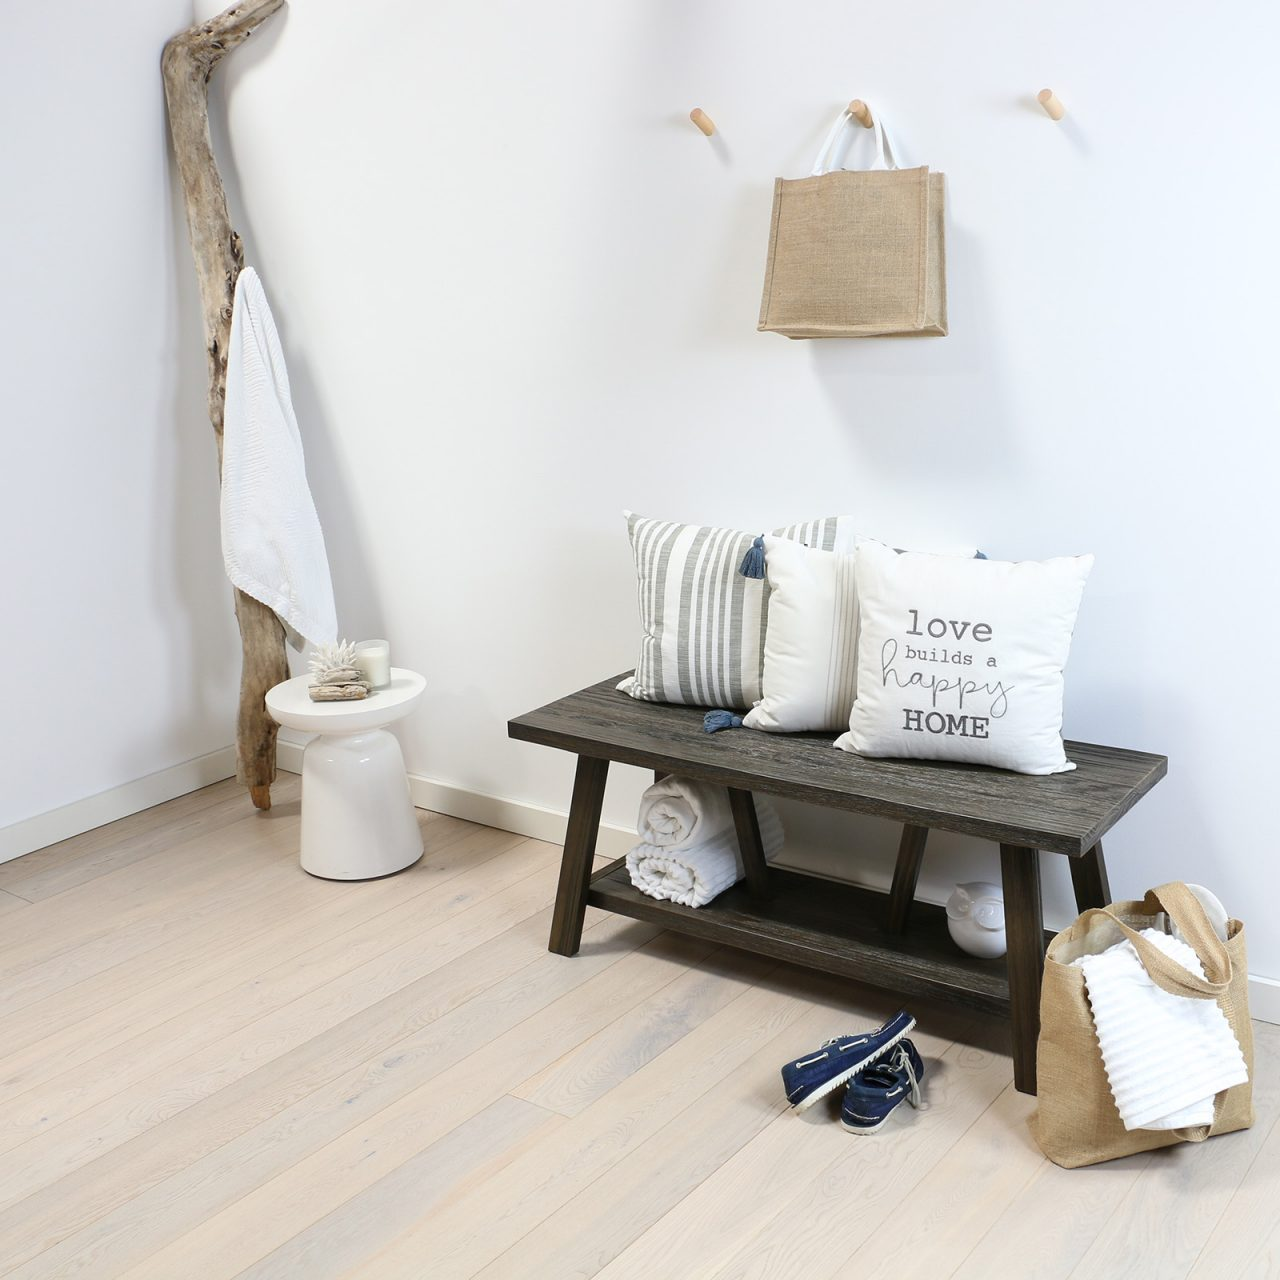 Coastal entry with wood bench and engineered hardwood flooring in white tones